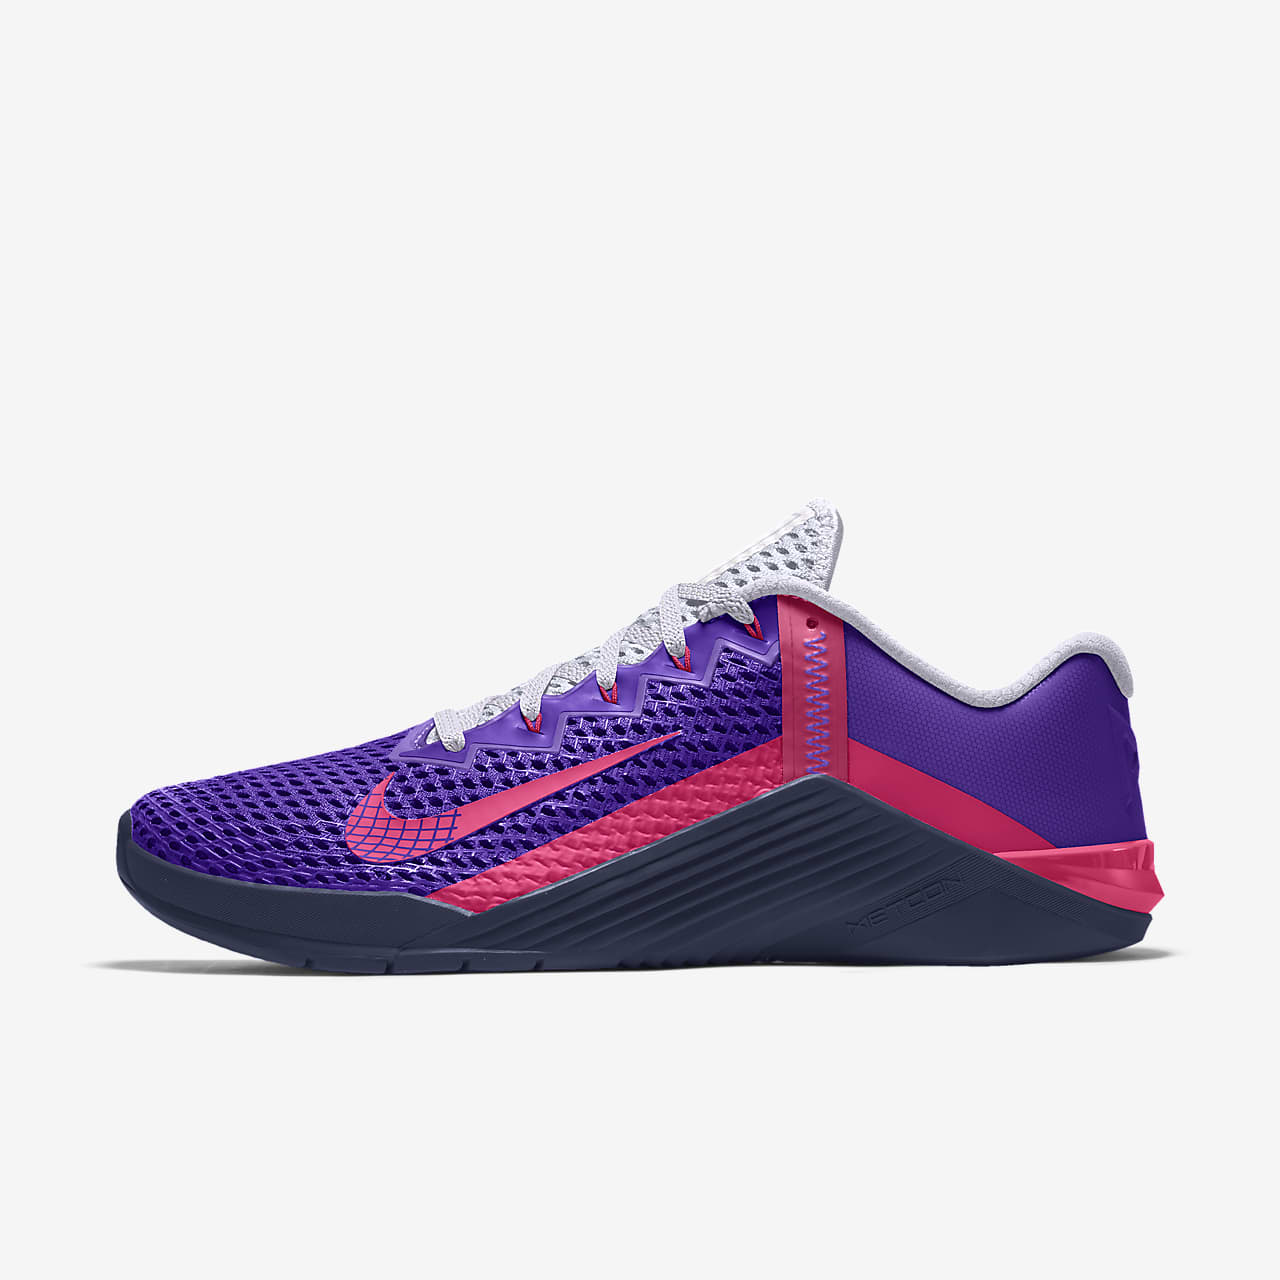 Nike Metcon 6 By You personalisierbarer Trainingsschuh